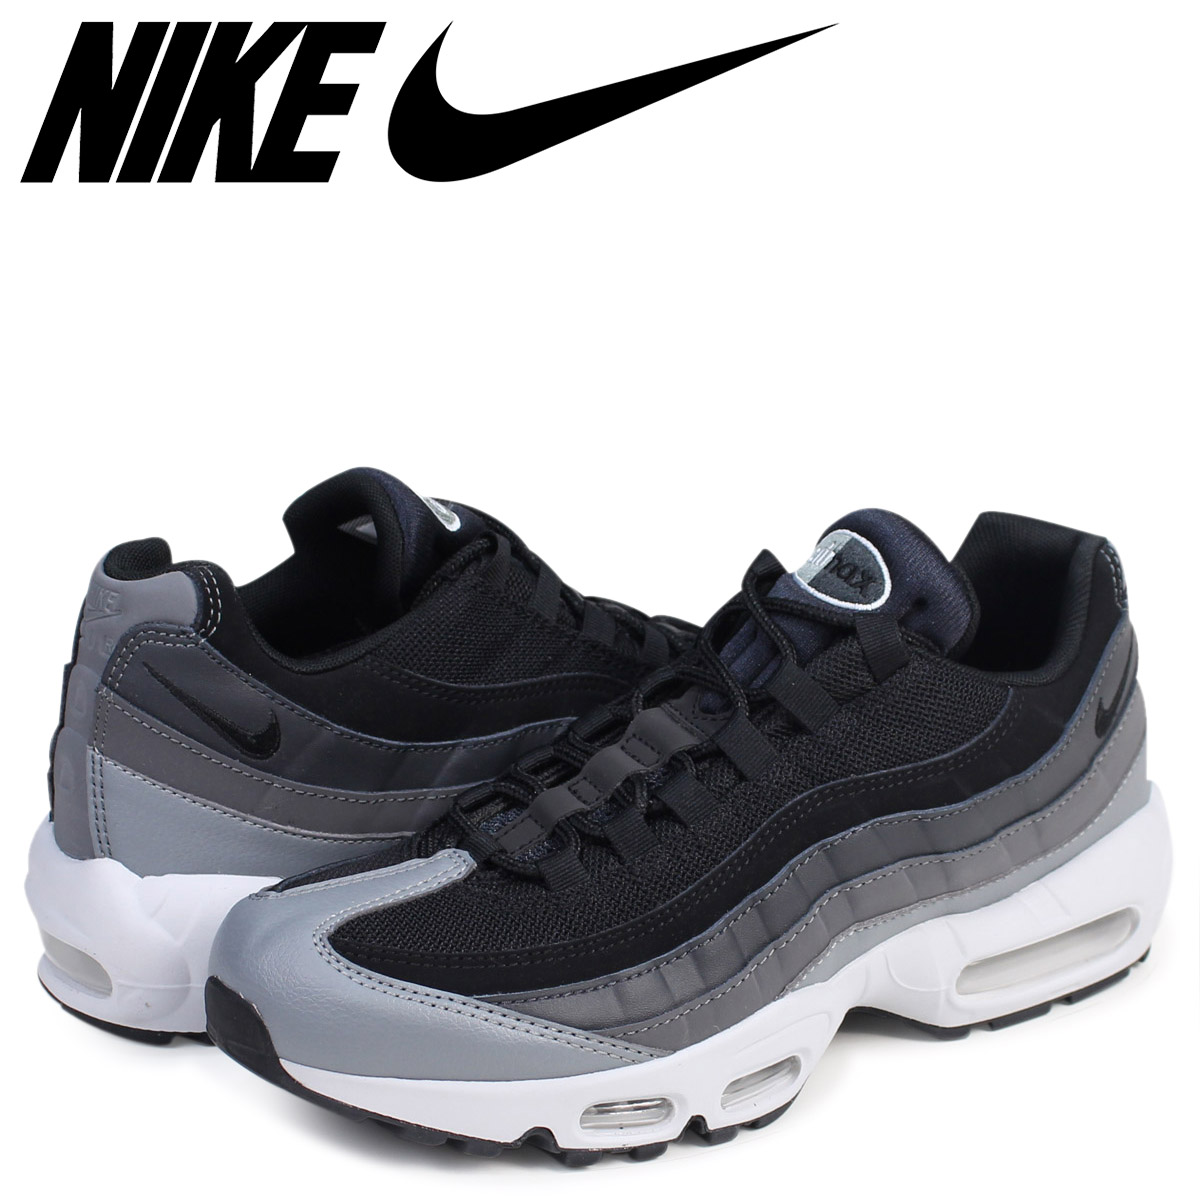 Nike Air Max 90 Essential (Anthracite White Black) | AJ1285 021